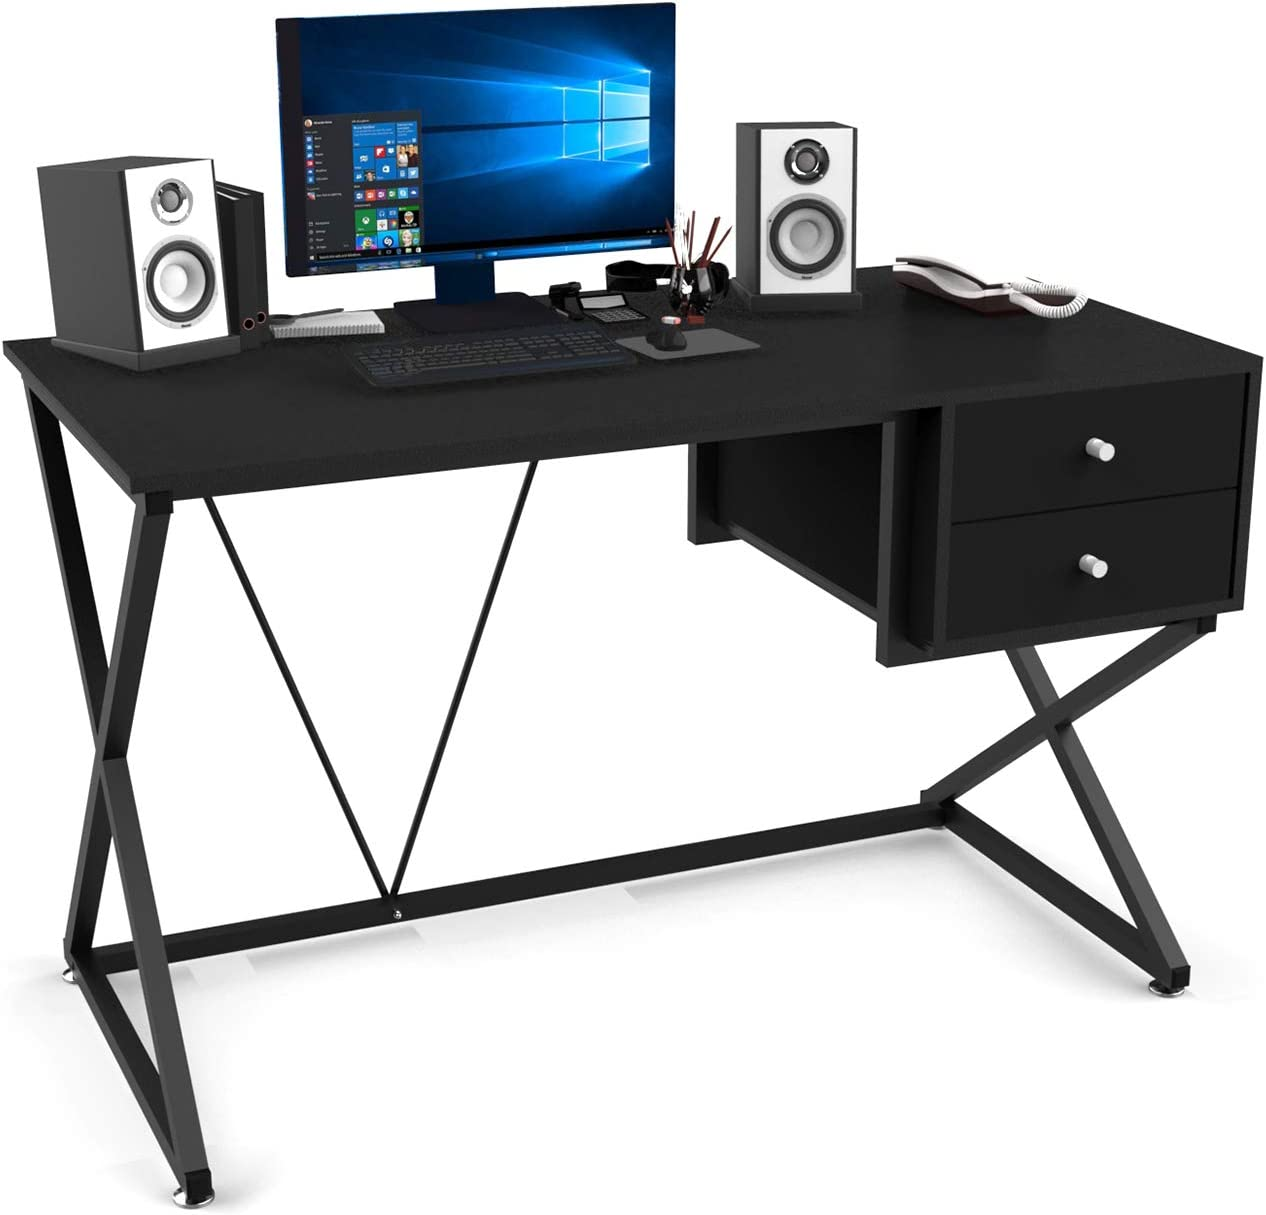 Kiimeey Black Computer Desk Table with Drawers Home Office Work Desk Student Writing Study Desk